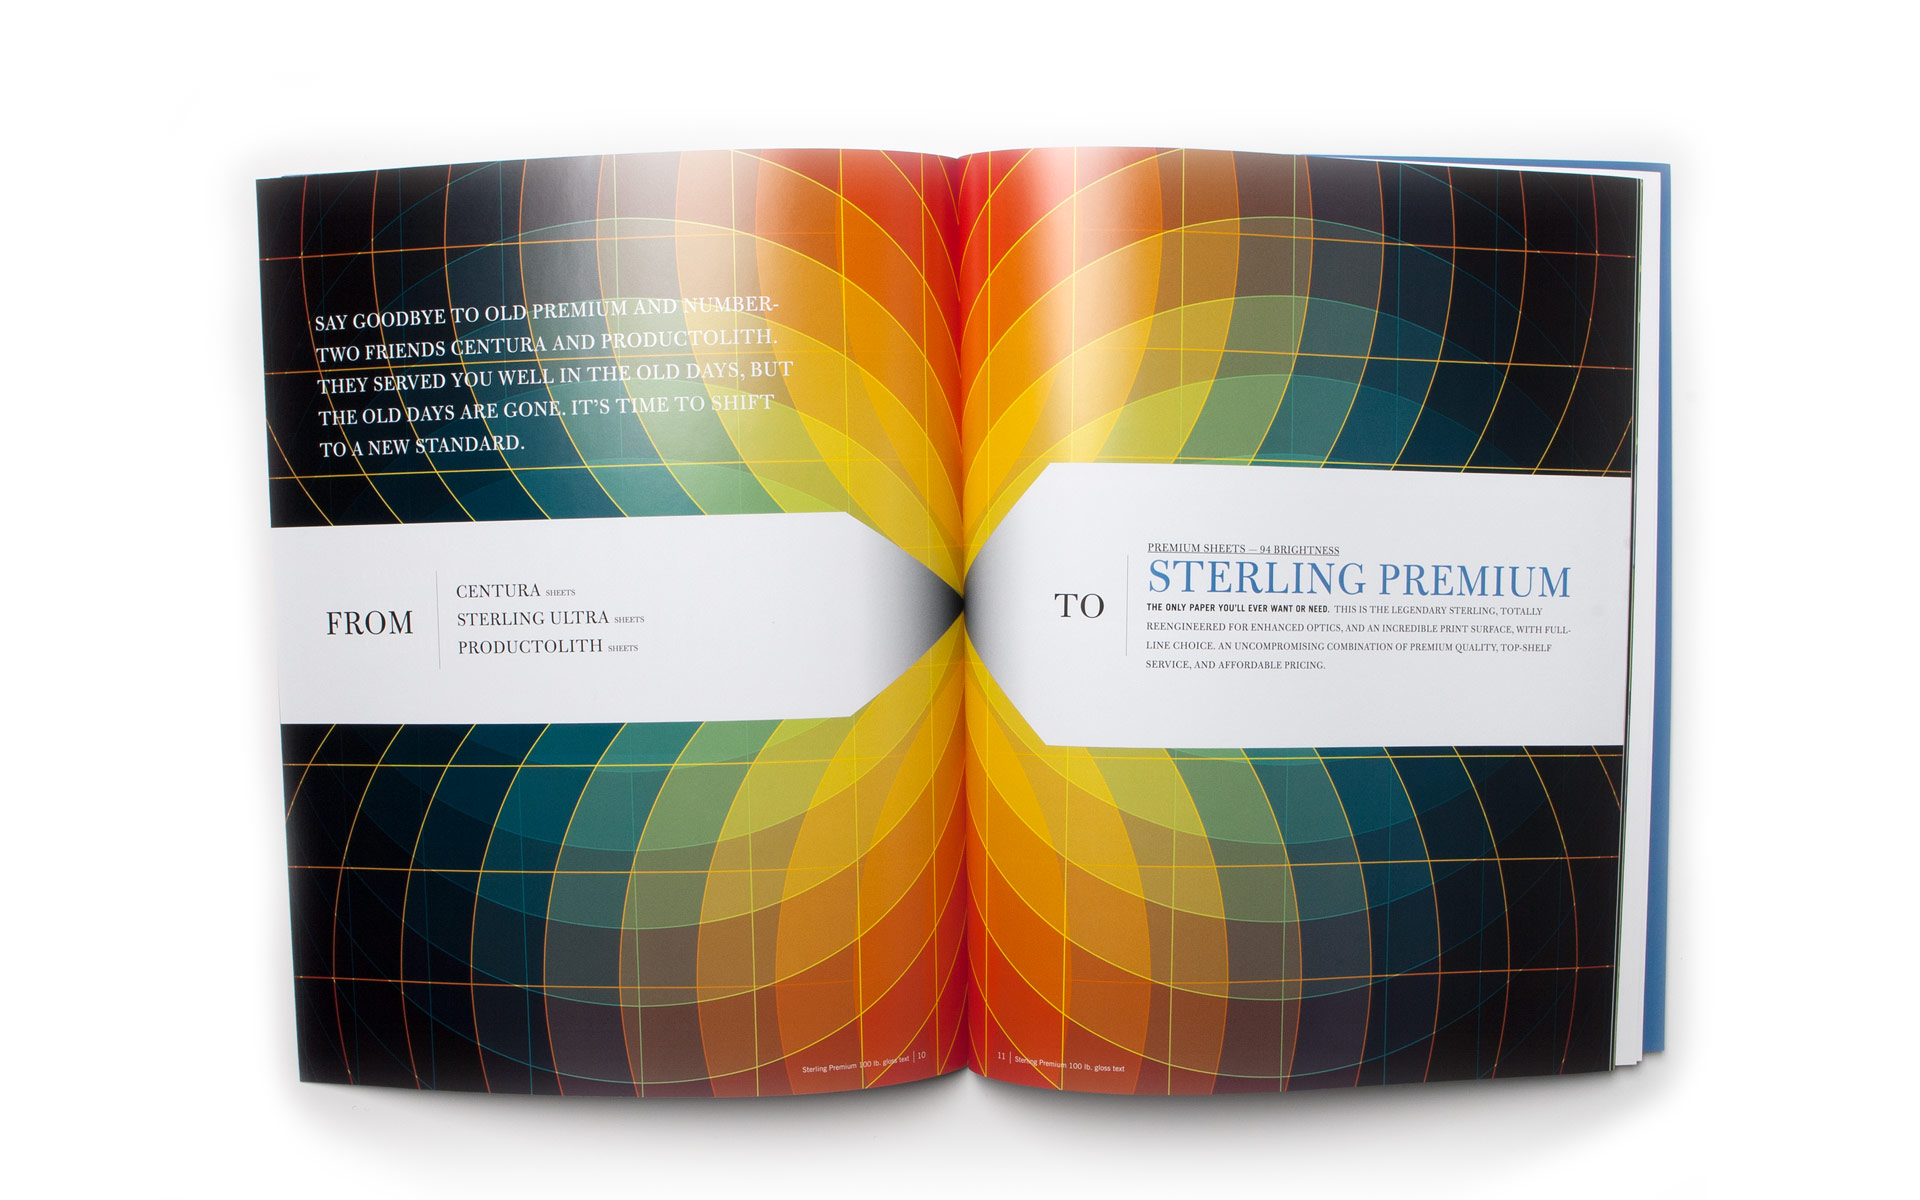 Sterling Premium Product Launch